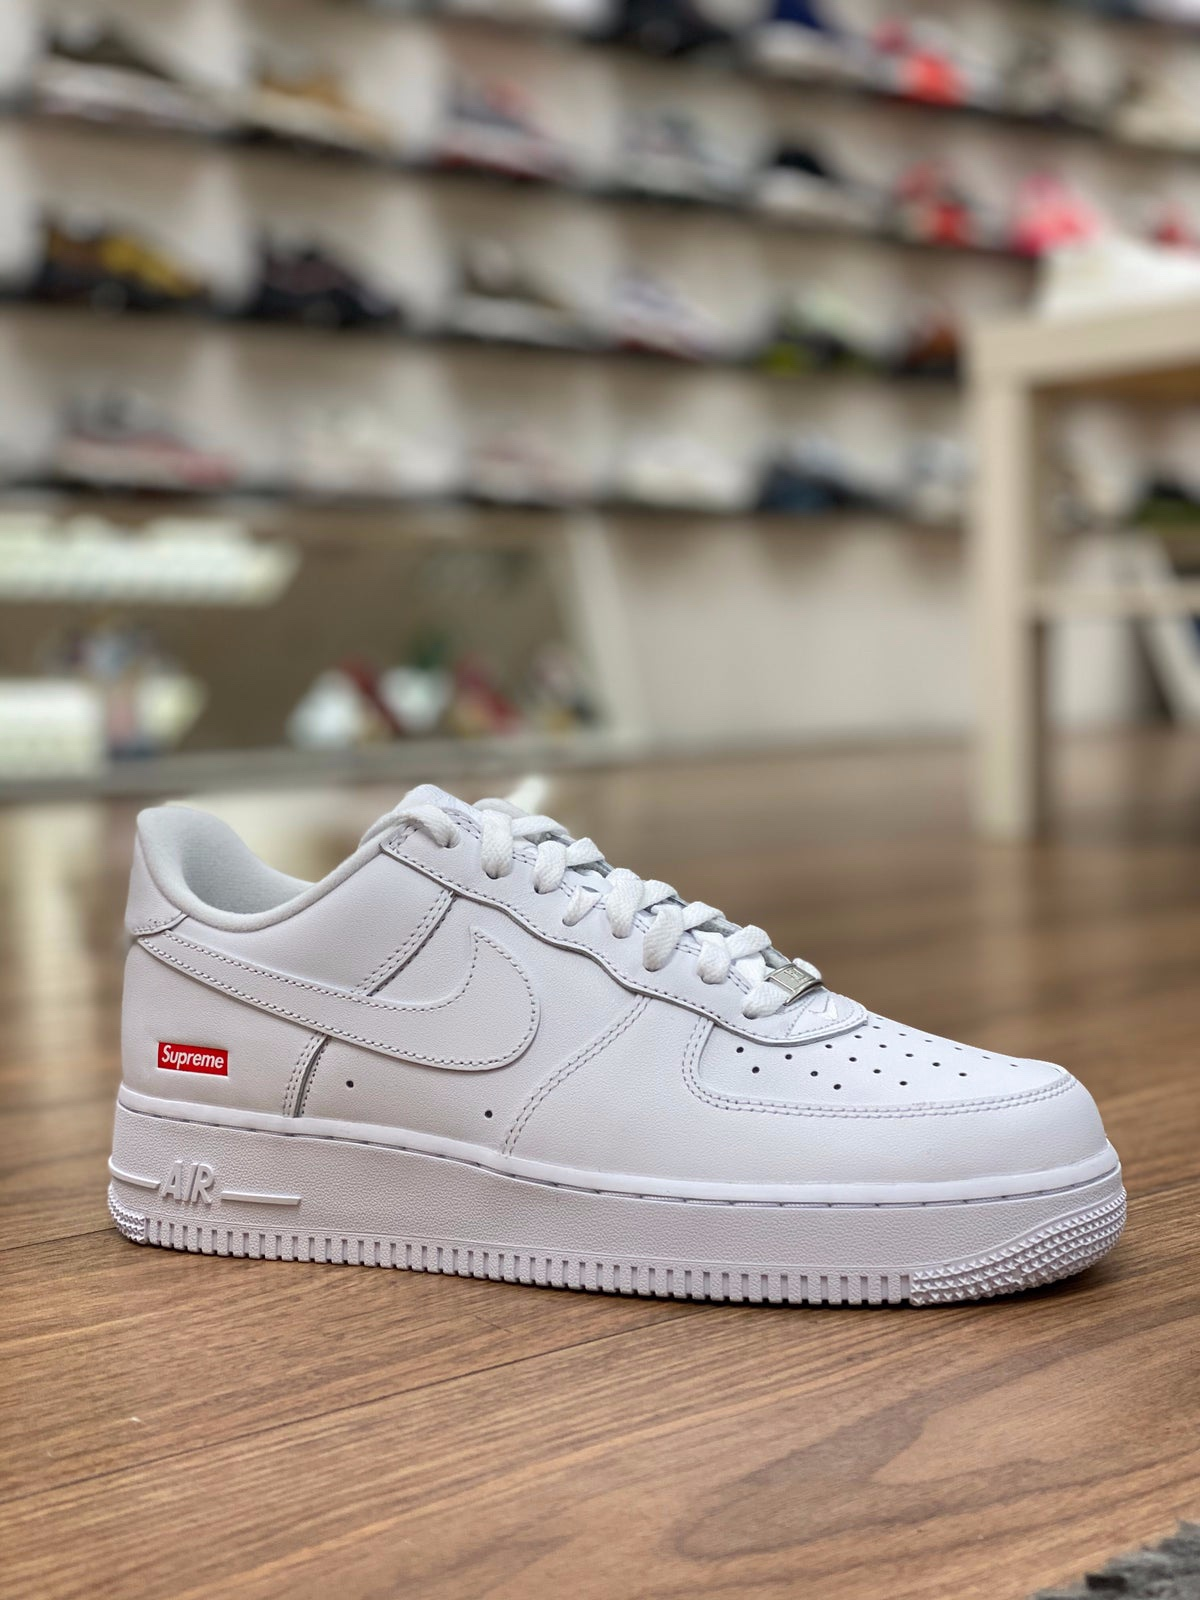 Restock Air Force 1 Supreme